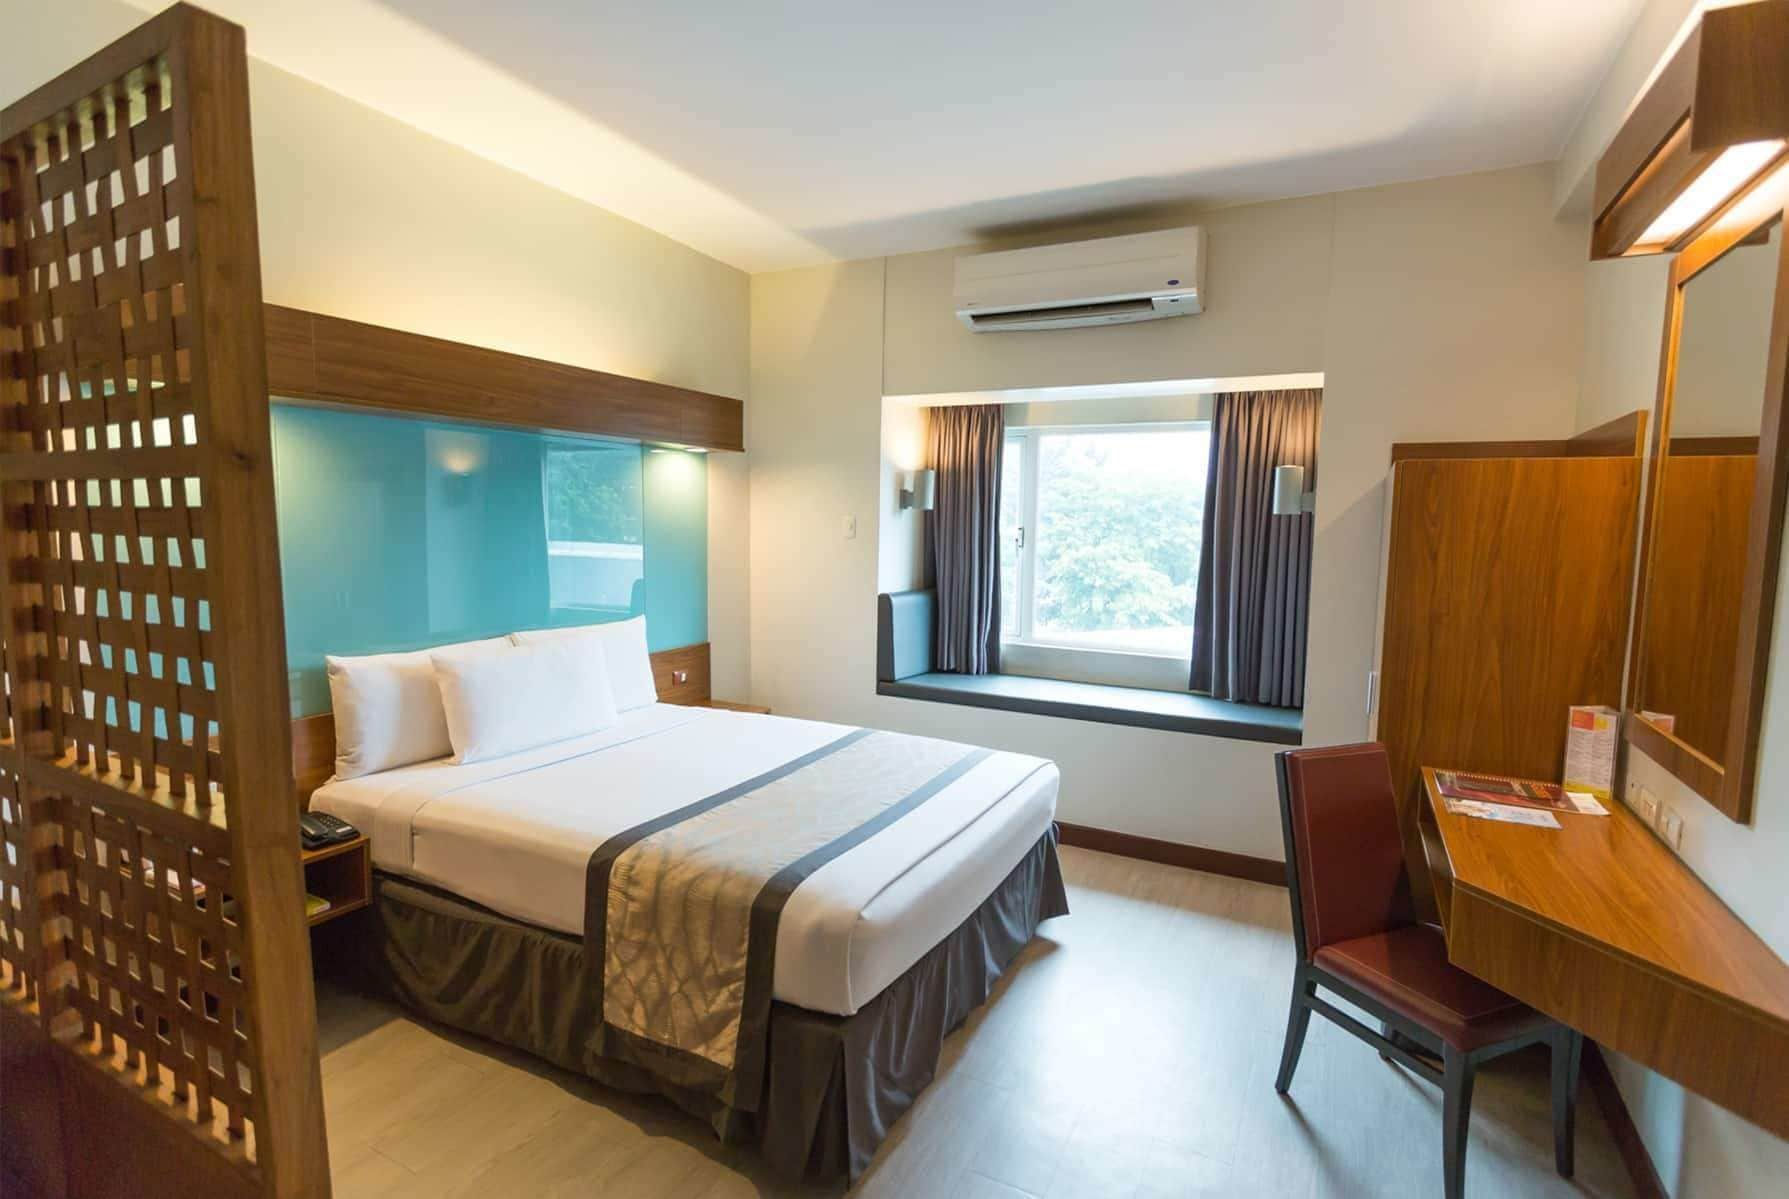 Microtel by Wyndham UP Technohub, Quezon City